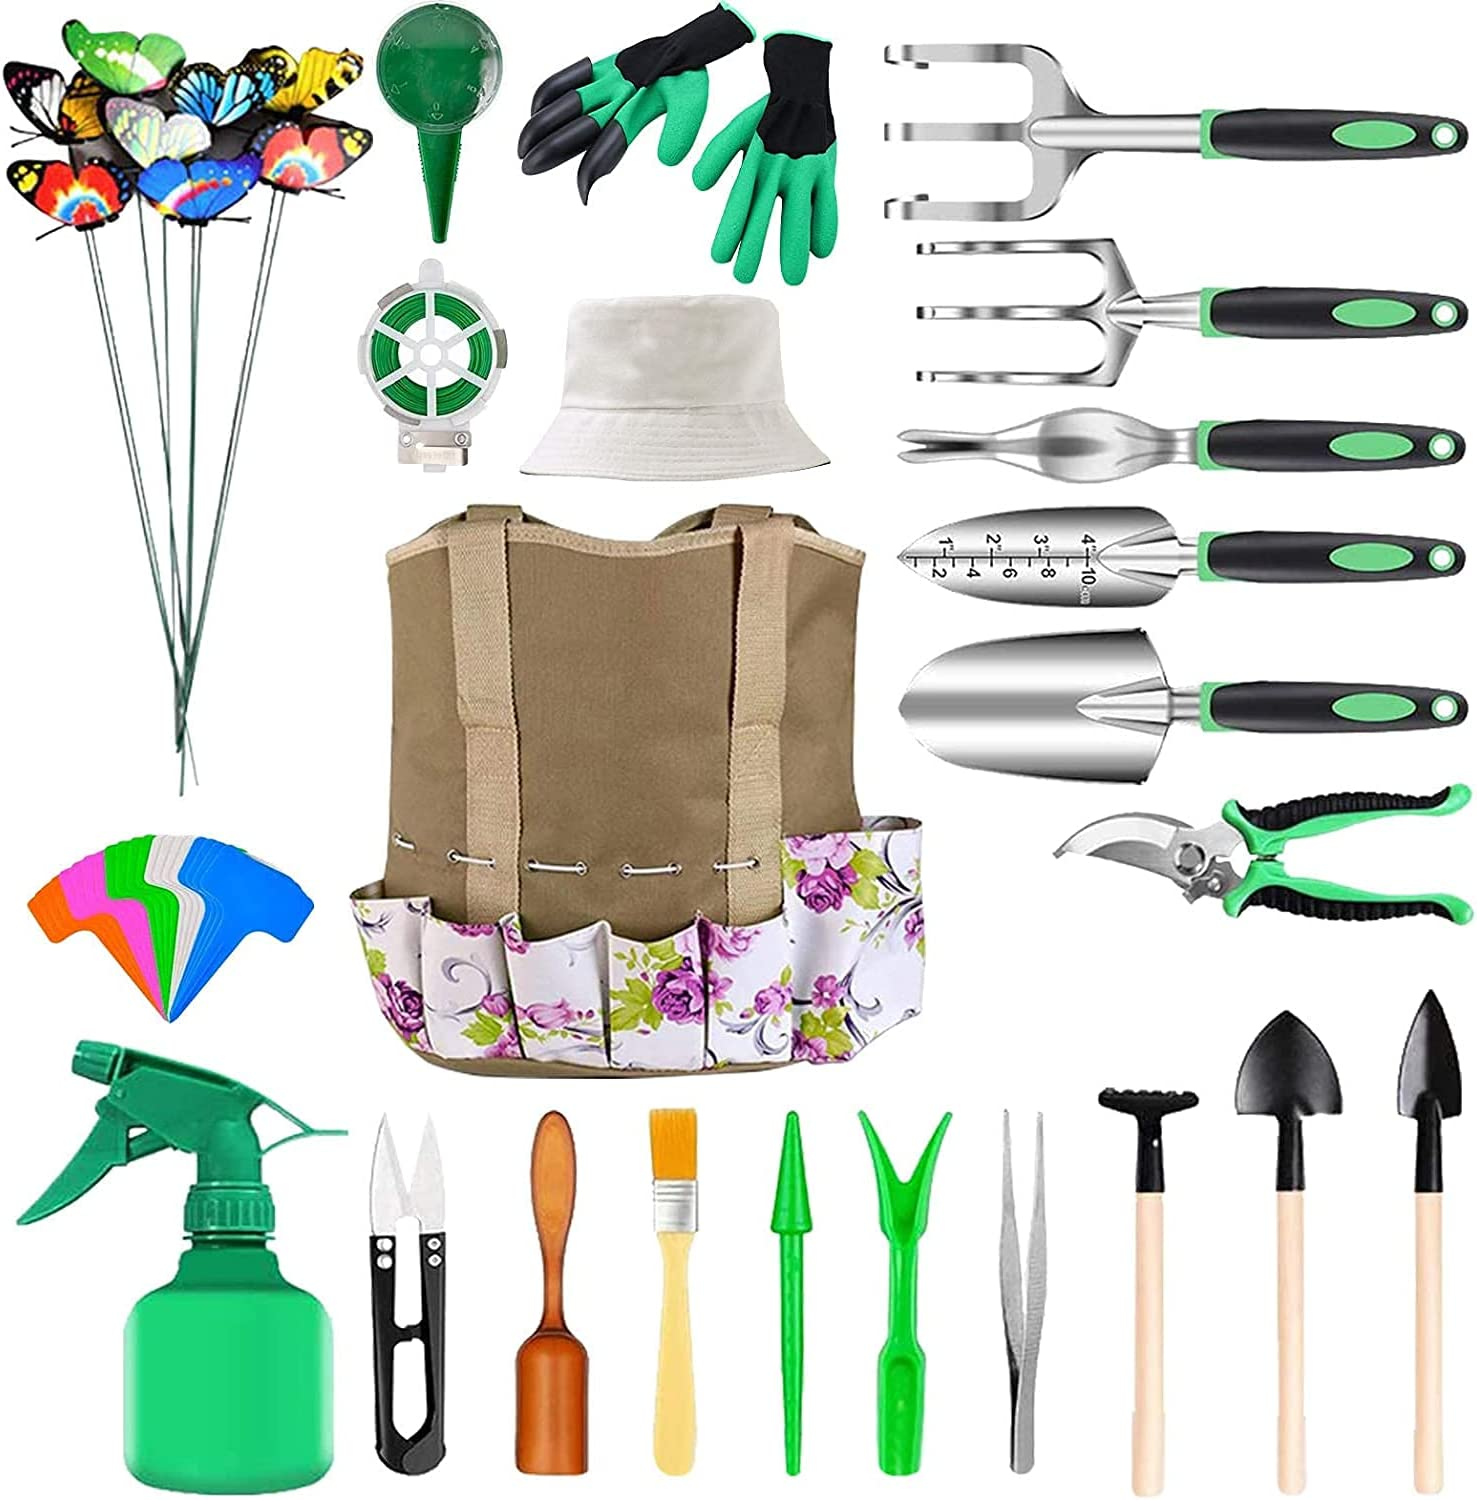 Joyhoop Garden Tools Set, Extra Succulent Tools Set, Heavy Duty Gardening Tools Aluminum with Soft Rubberized Non-Slip Handle Tools, Durable Storage Tote Bag, Gifts Tools for Men Women